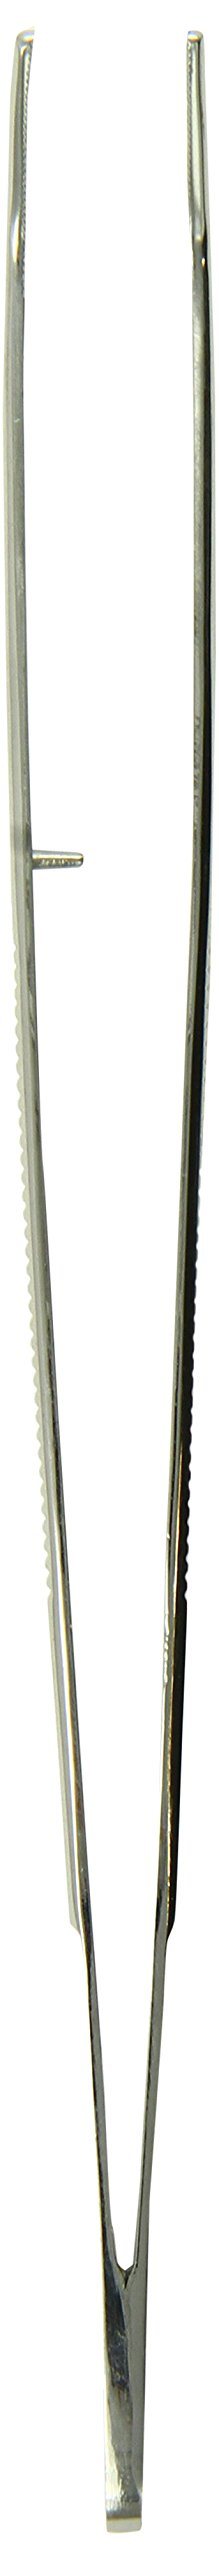 Tamsco Tweezers 8-Inch Angled Stainless Steel Angled Tip Serrated